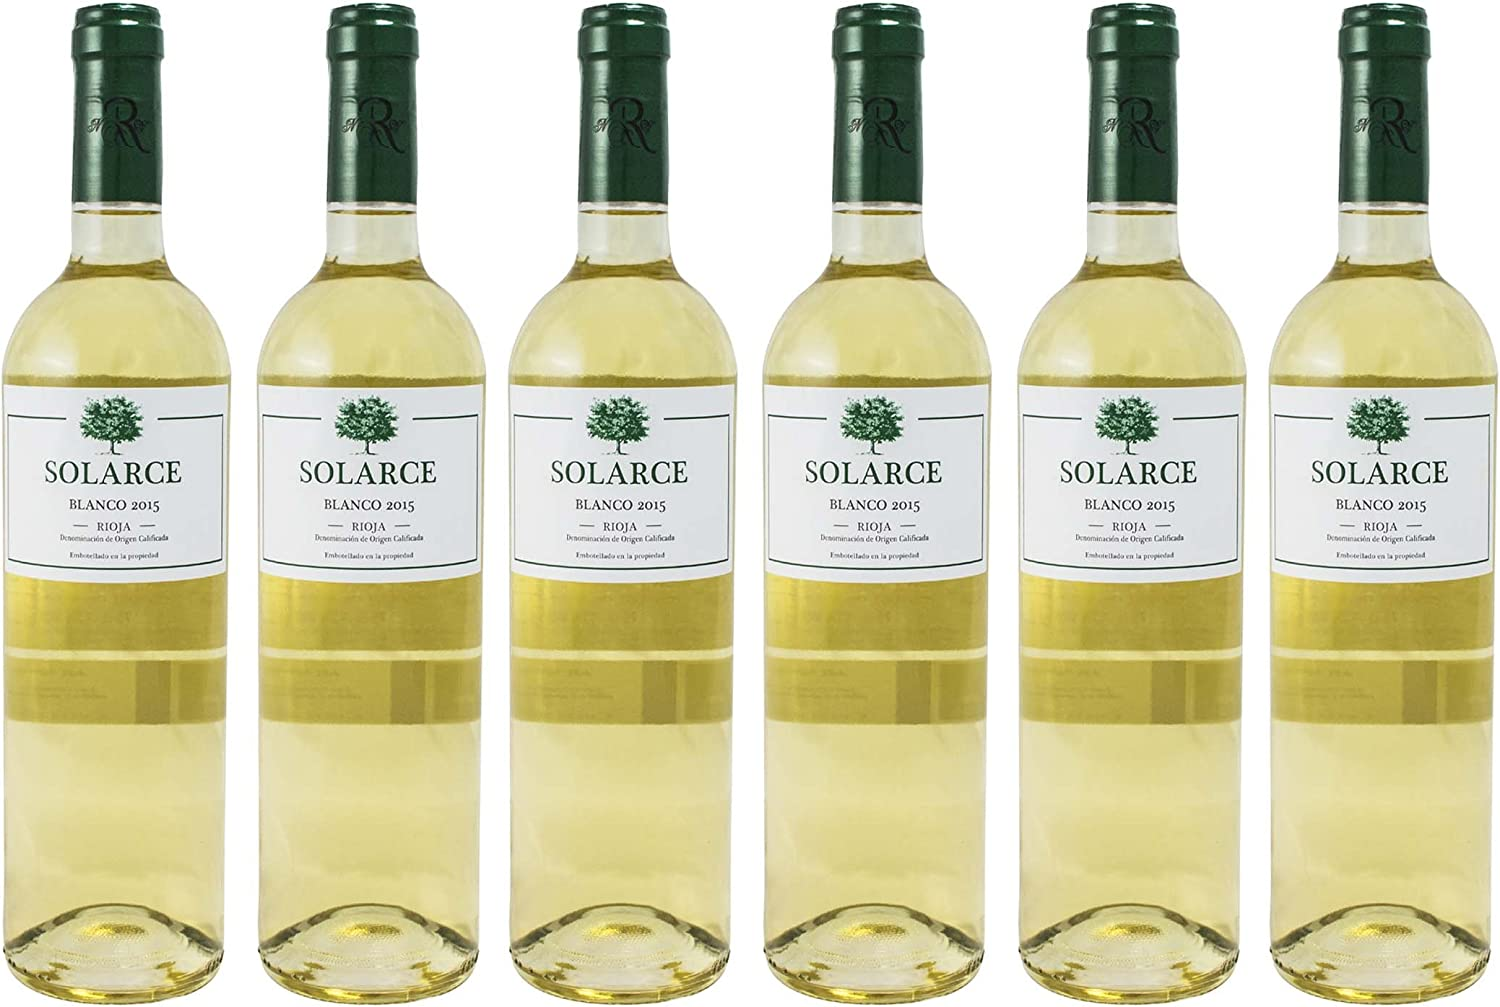 SOLARCE BLANCO RIOJA ESTUCHE DE 6 BOTELLAS 6 x 750 ML: Amazon.es: Alimentación y bebidas